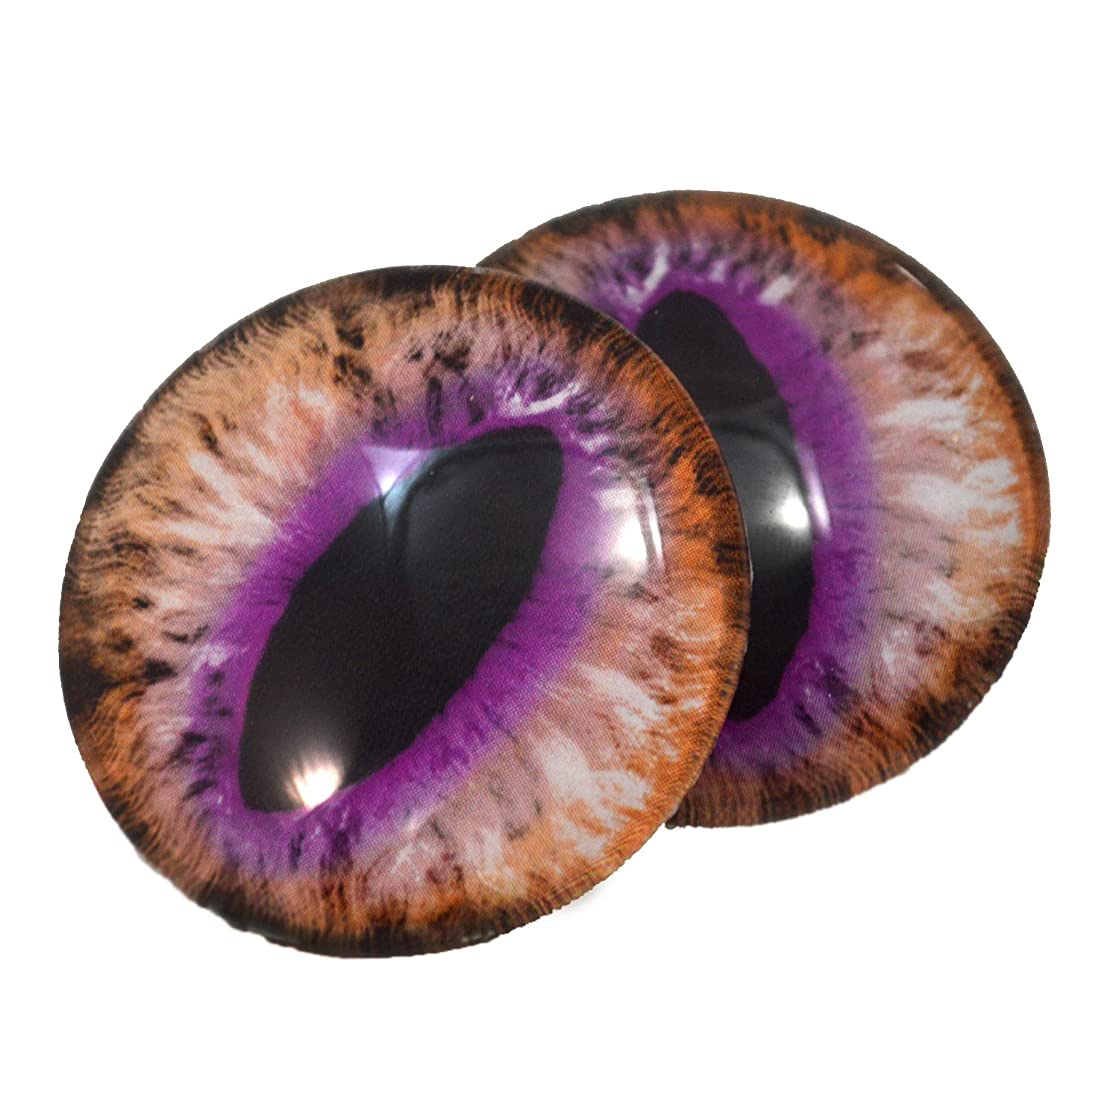 40mm LArge Glass Brown and Purple Cat or Fairy Tale Dragon Eyes Cabochons for Fantasy Art Doll Taxidermy Sculptures or Jewelry Making Crafts Set of 2